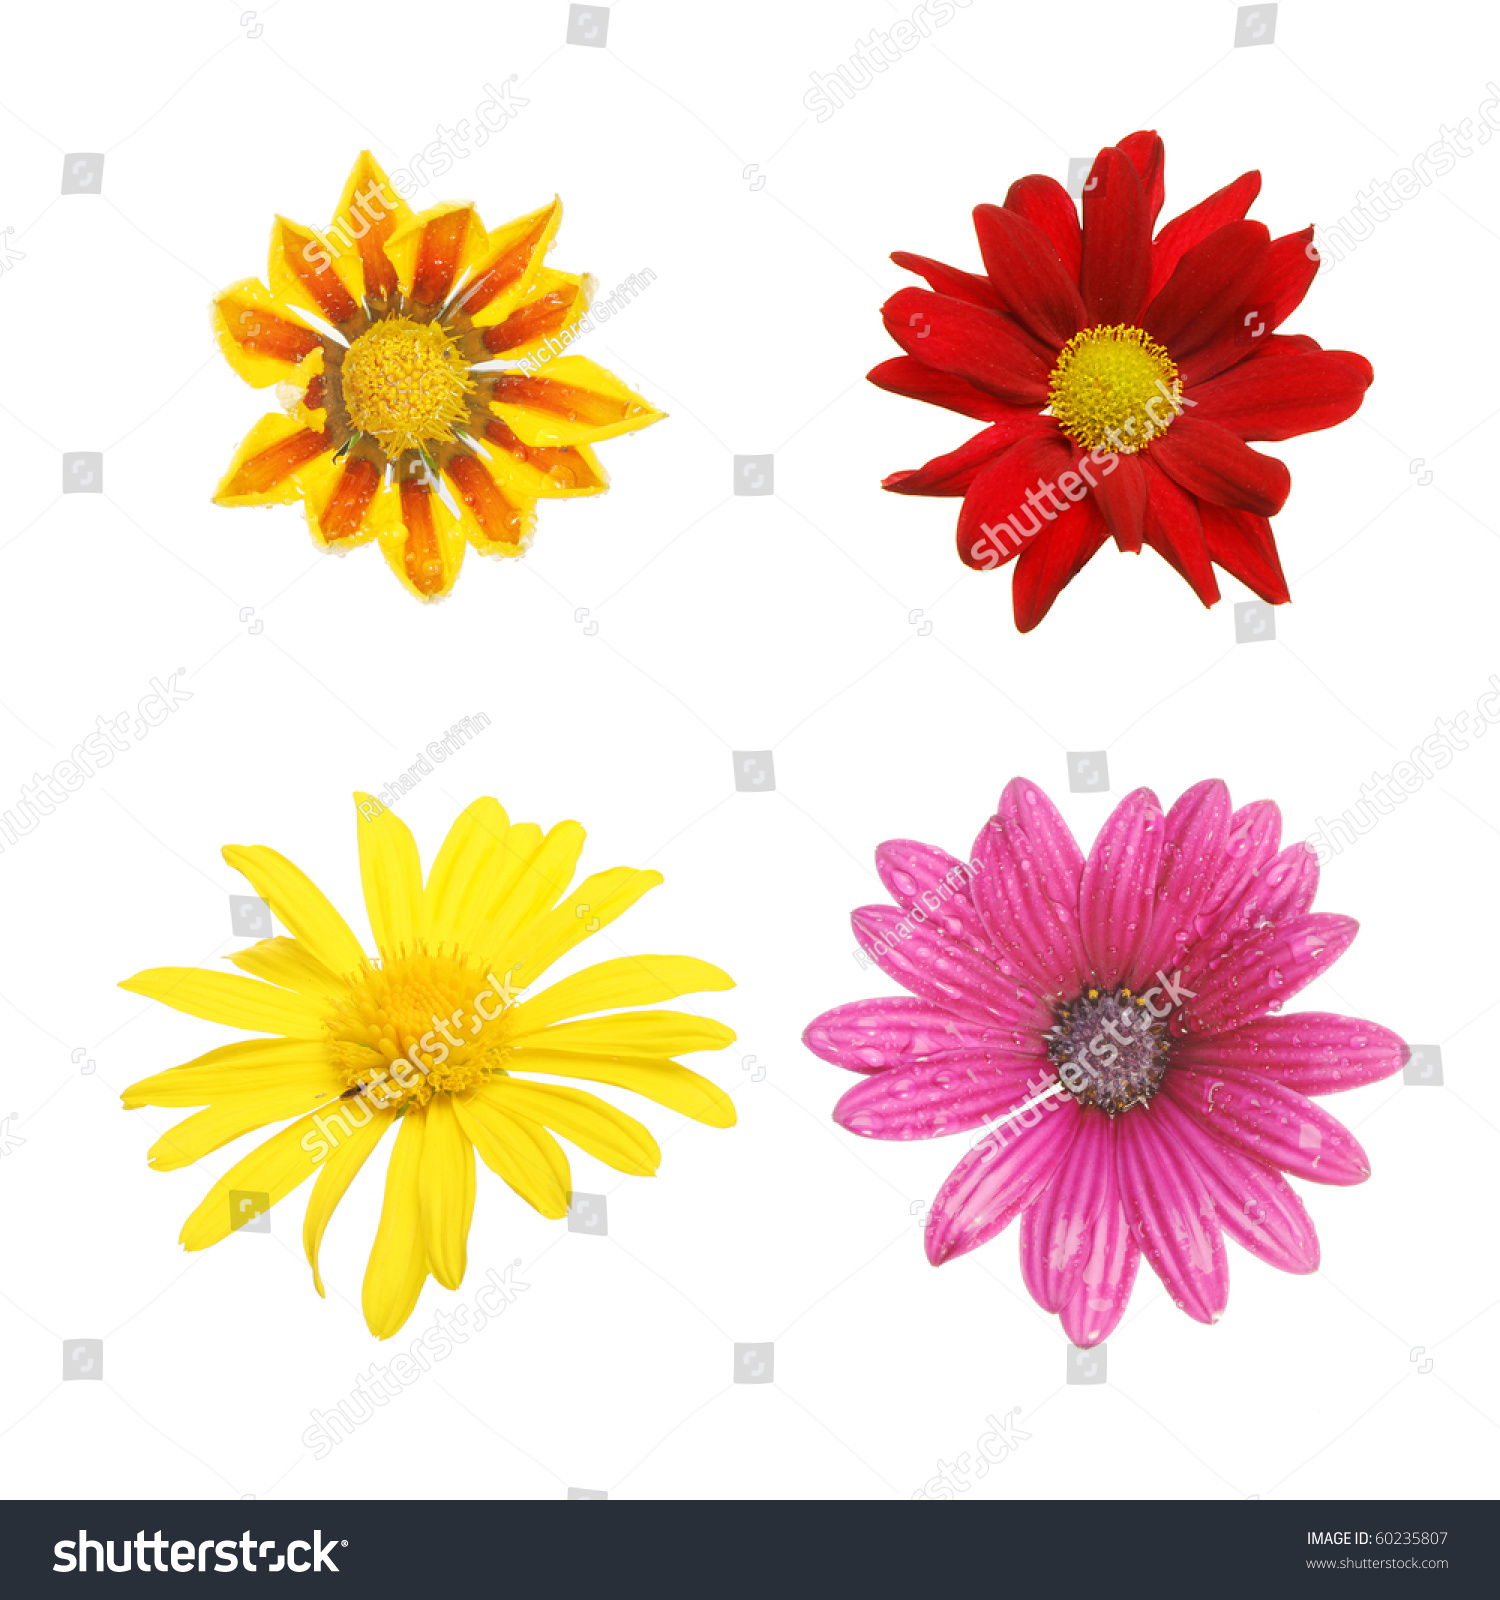 Collection four daisy type flowers stock photo edit now 60235807 collection of four daisy type flowers izmirmasajfo